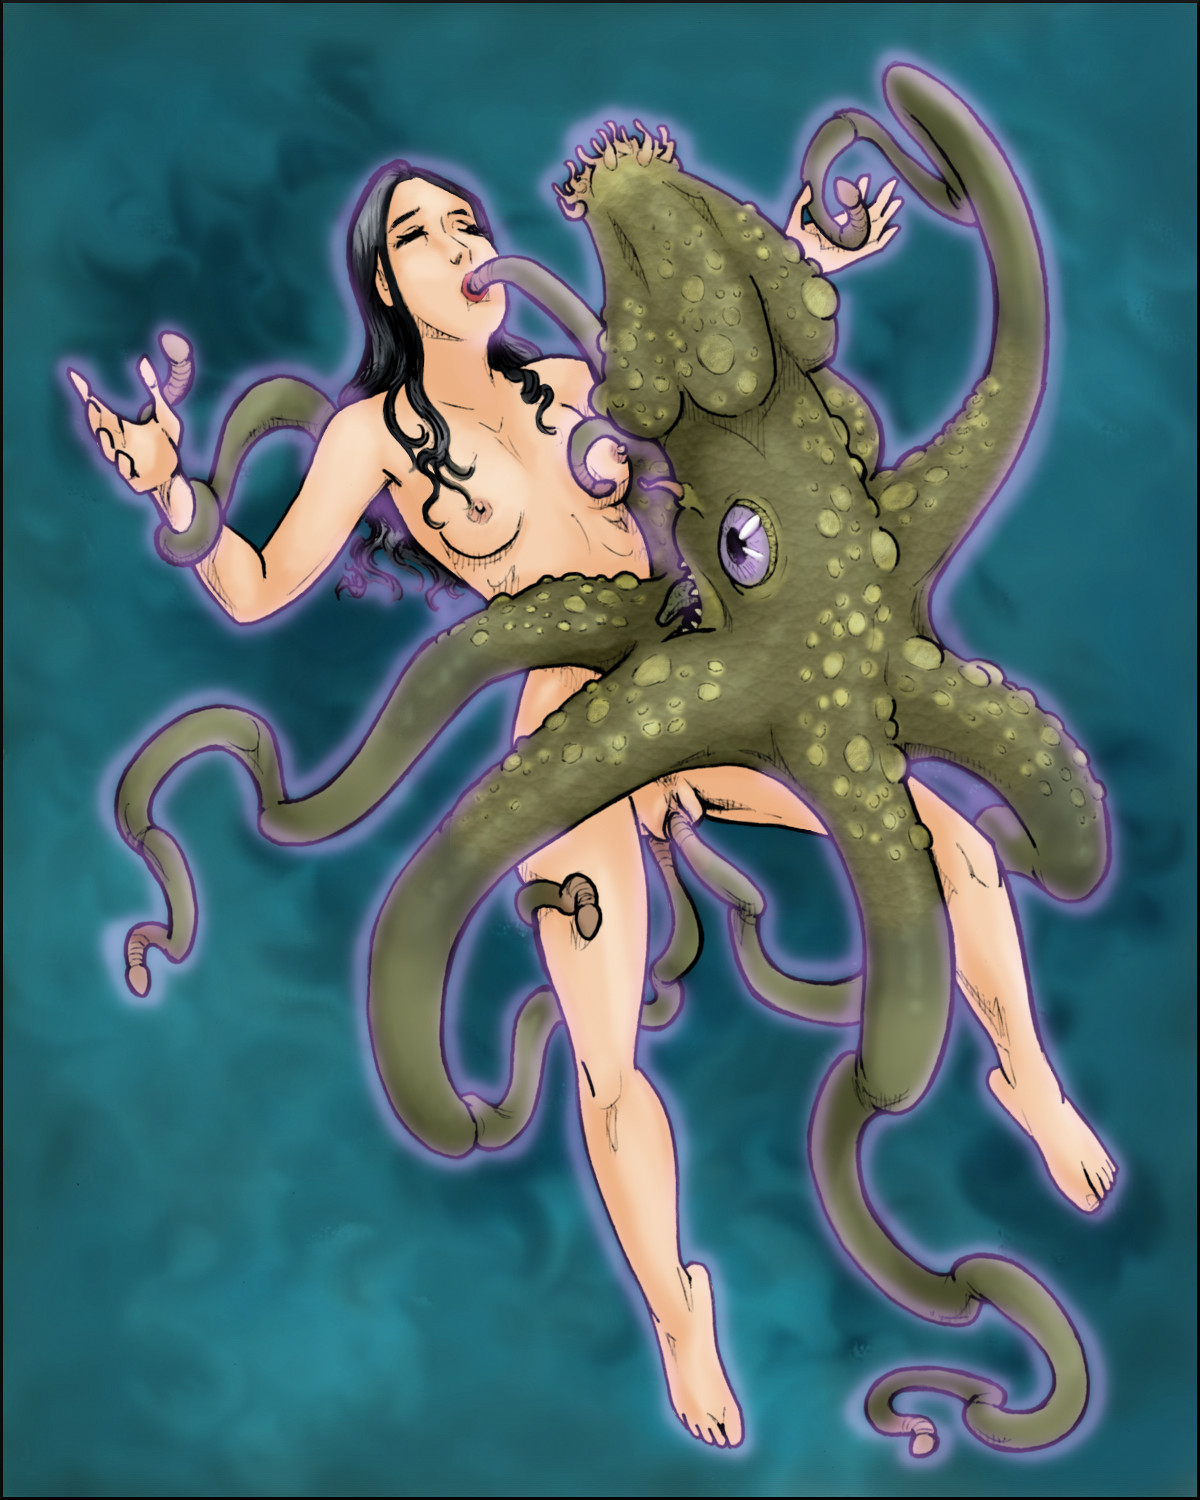 Full-on tentacle monster-on-Veronica Bryce sex.  Full color and suitable for pinning up (though probably not at your workplace.)